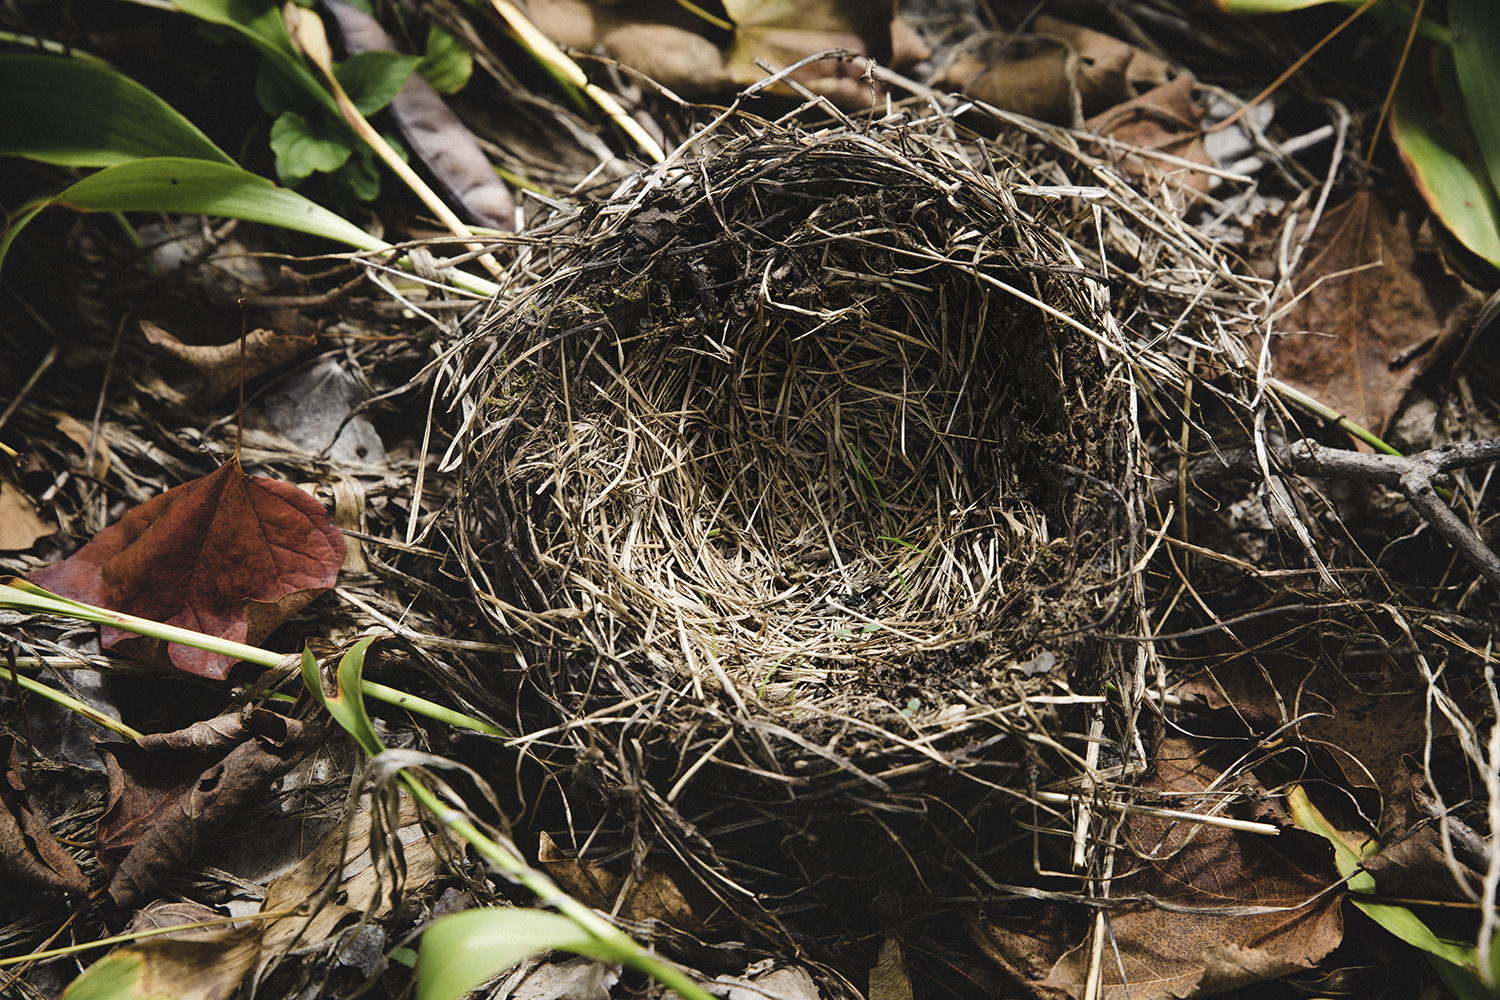 Birds_Nests_as_found_0009.jpg